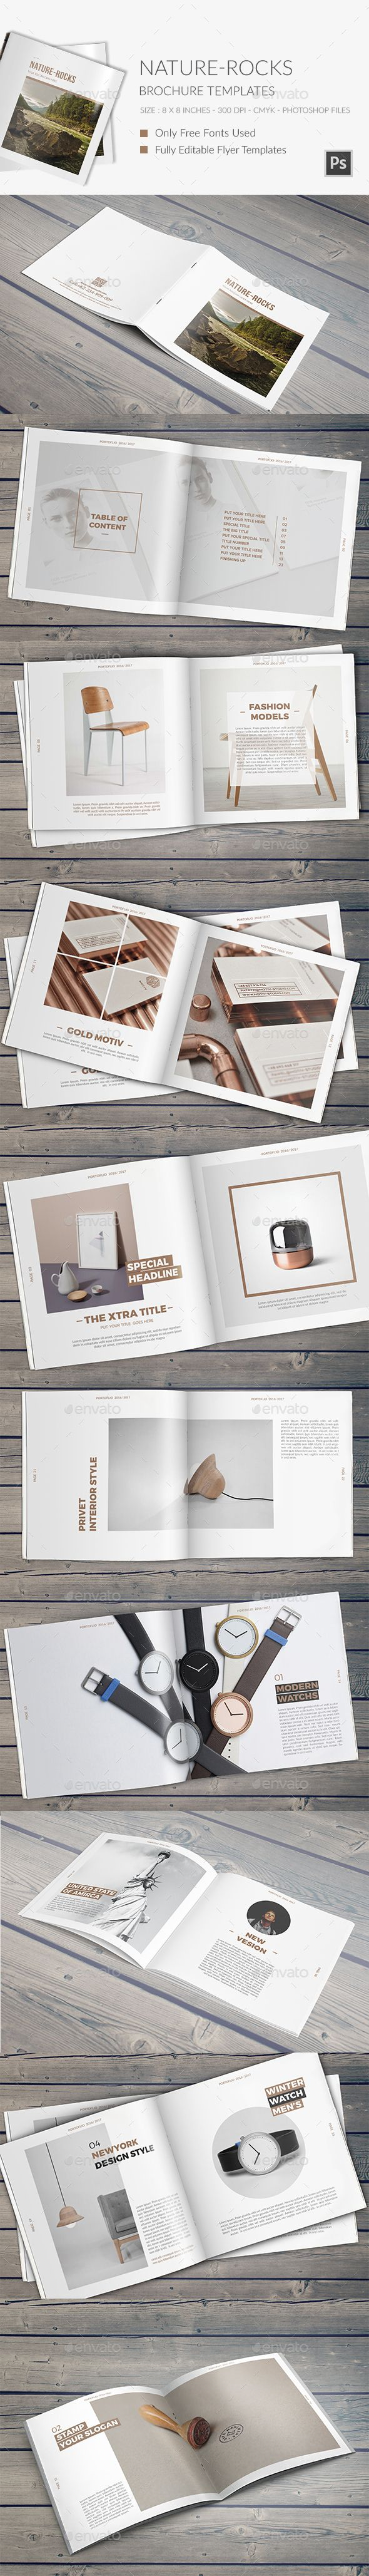 NatureRocks Square Portfolio Brochure Template — Photoshop PSD #minimal #gray • Available here → https://graphicriver.net/item/naturerocks-square-portfolio-brochure-template/13542410?ref=pxcr